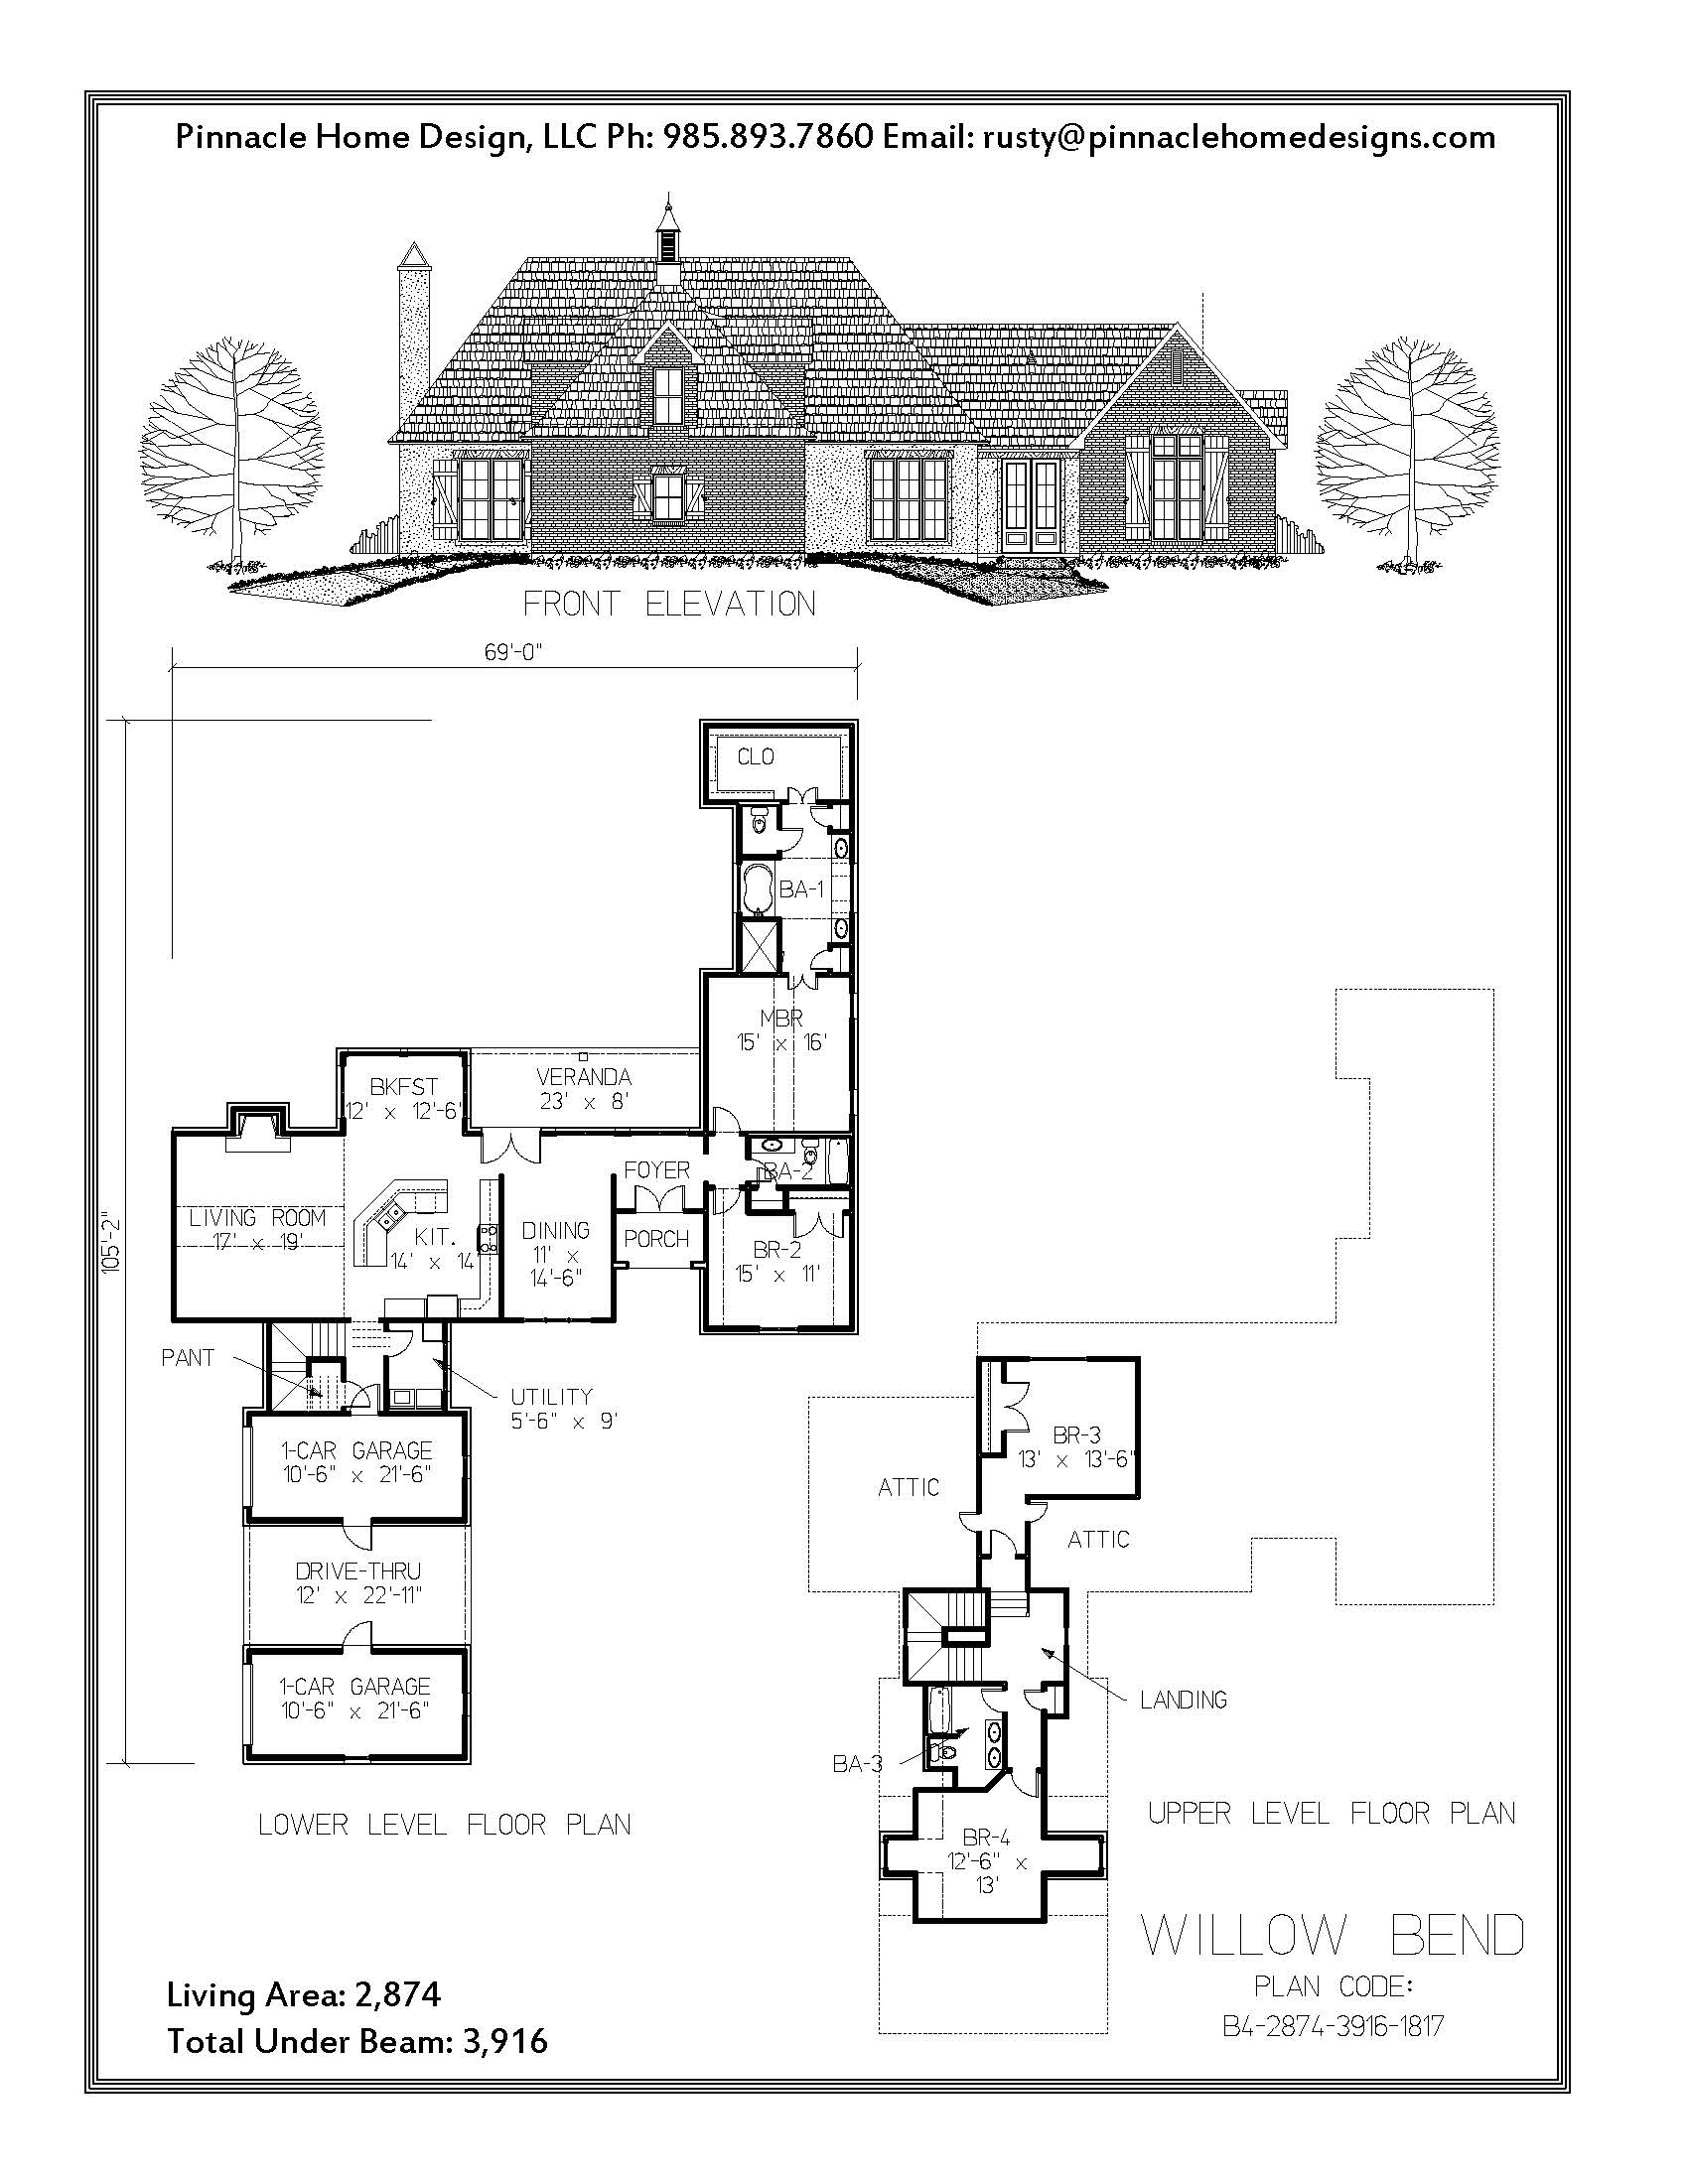 Pinnacle home designs the willow bend floor plan for The willow house plan